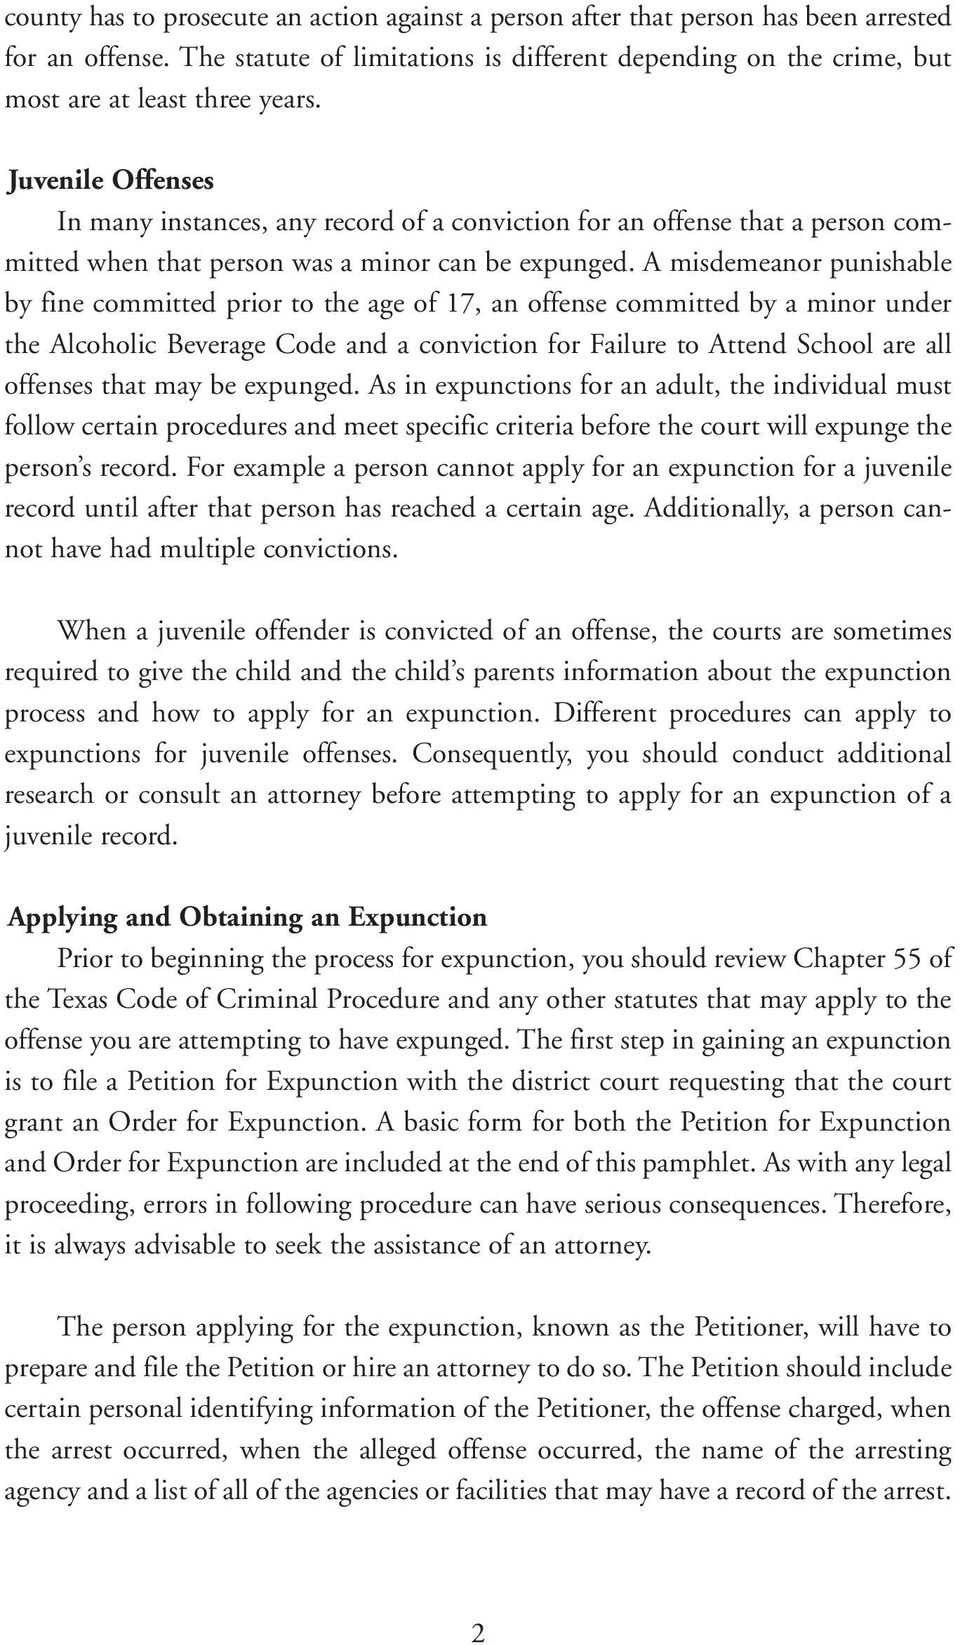 Juvenile Offenses In many instances, any record of a conviction for an offense that a person committed when that person was a minor can be expunged.